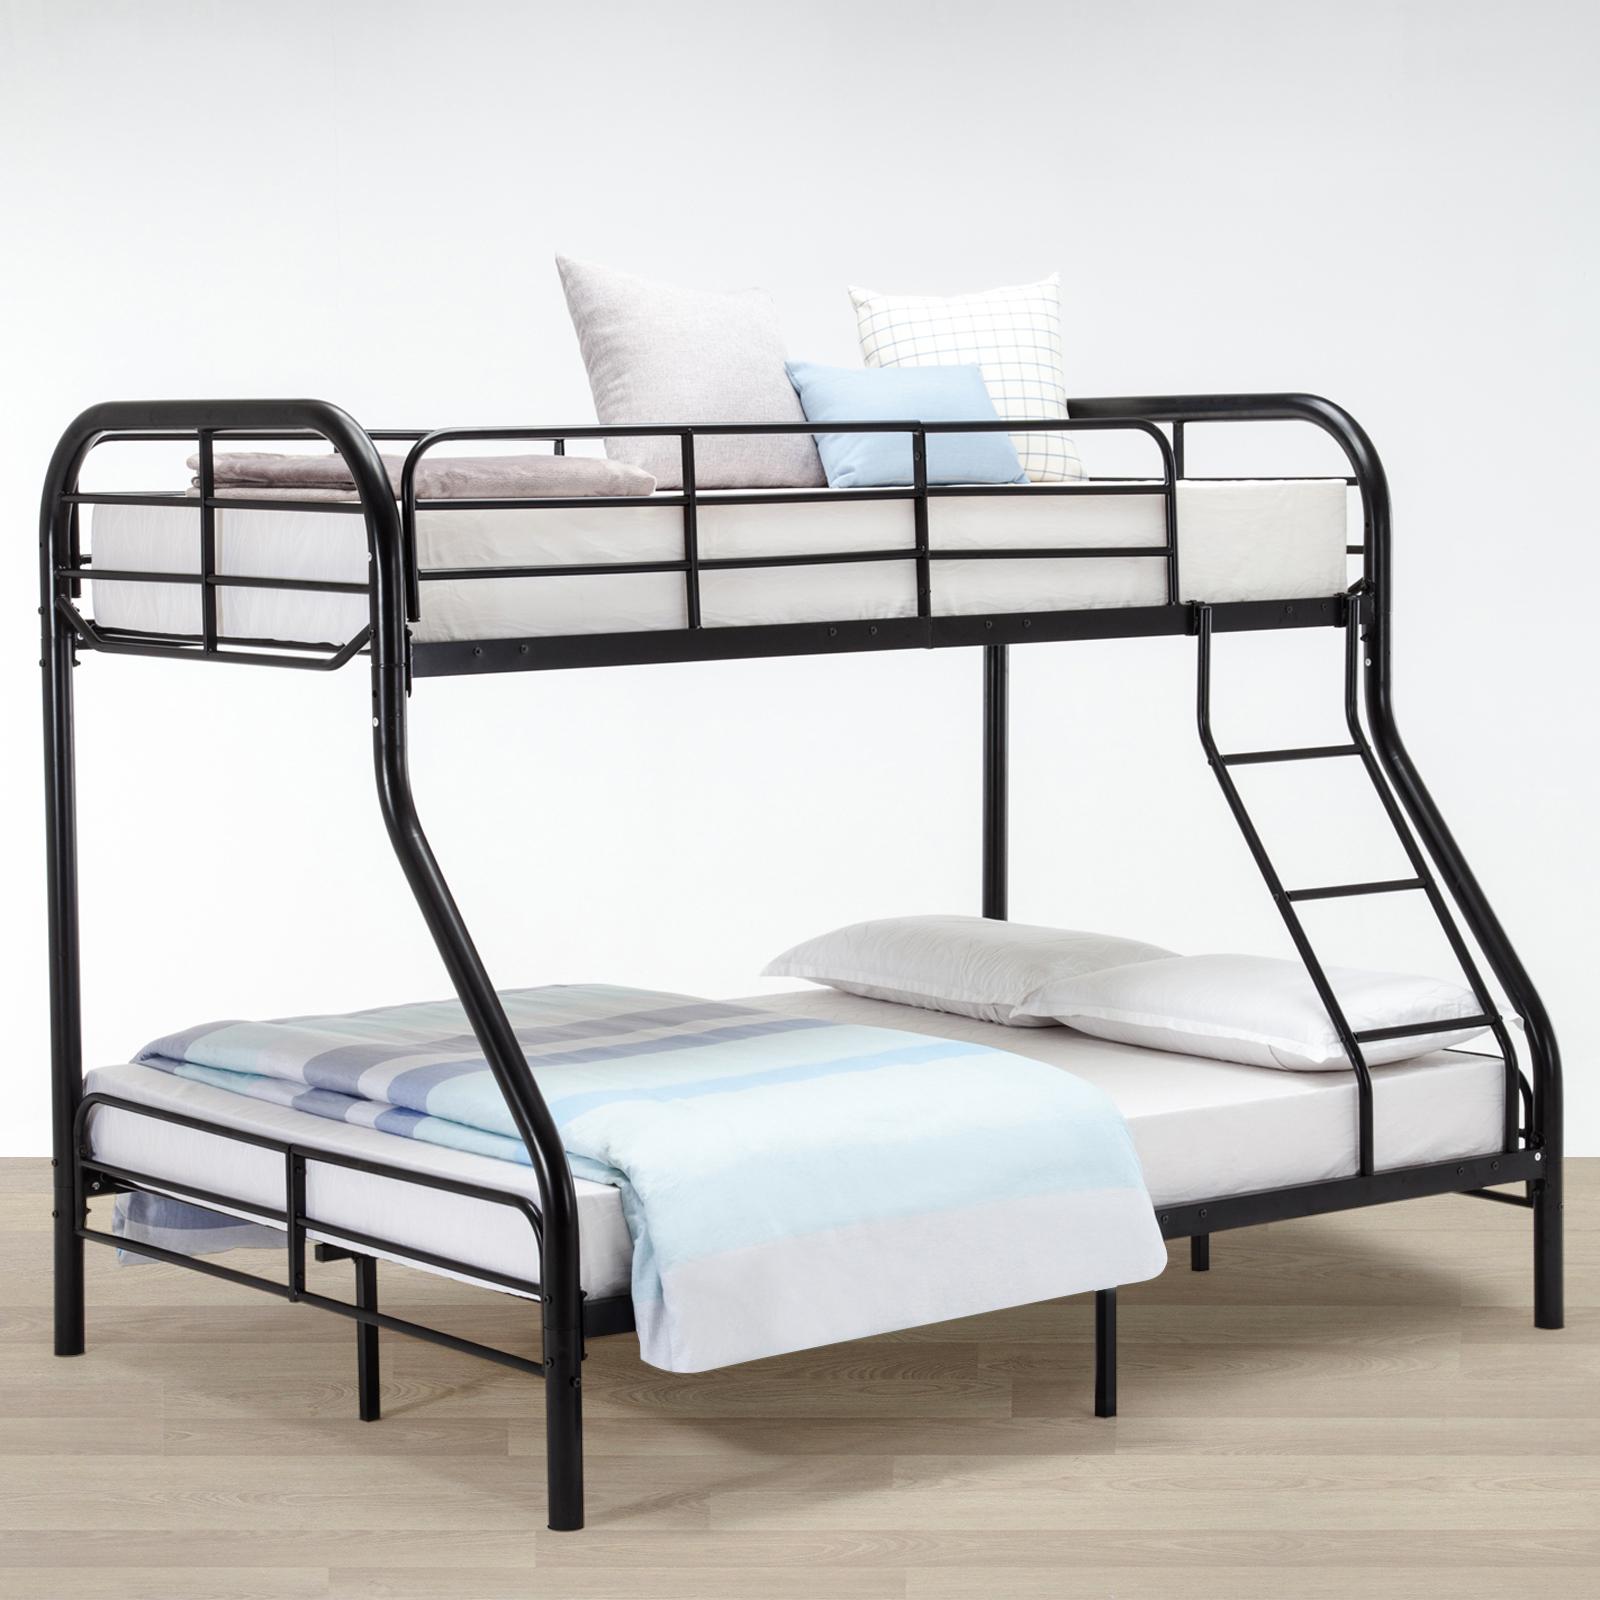 Twin over full metal bunk bed frame kids teens adult dorm Metal bed frame twin